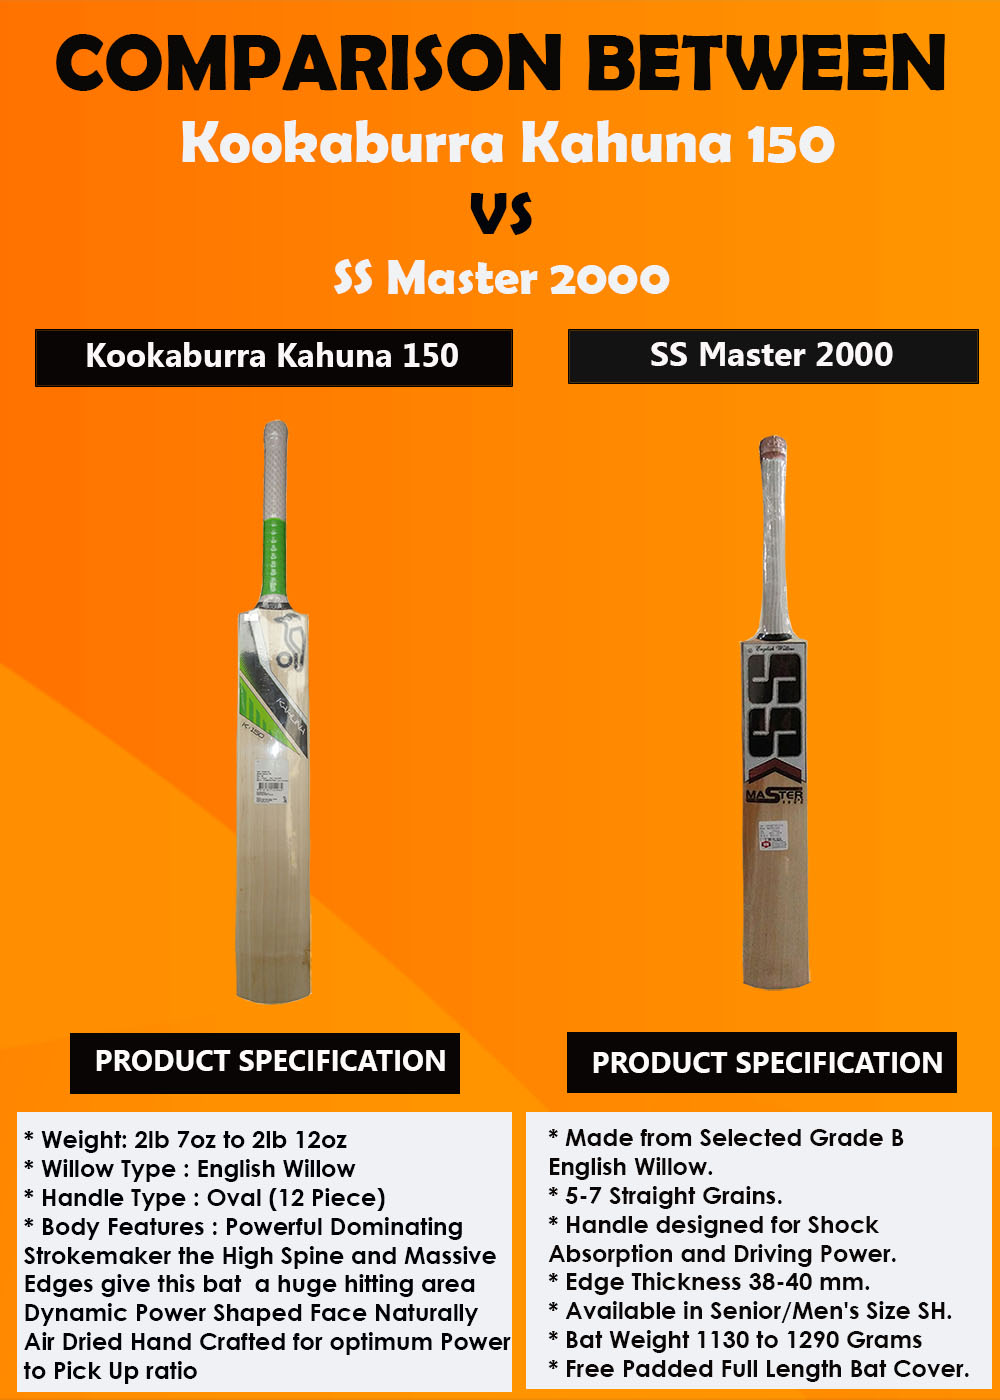 COMPARISON BETWEEN KOOKABURRA KAHUNA 150 VS SS MASTER 2000 IMAGES_1